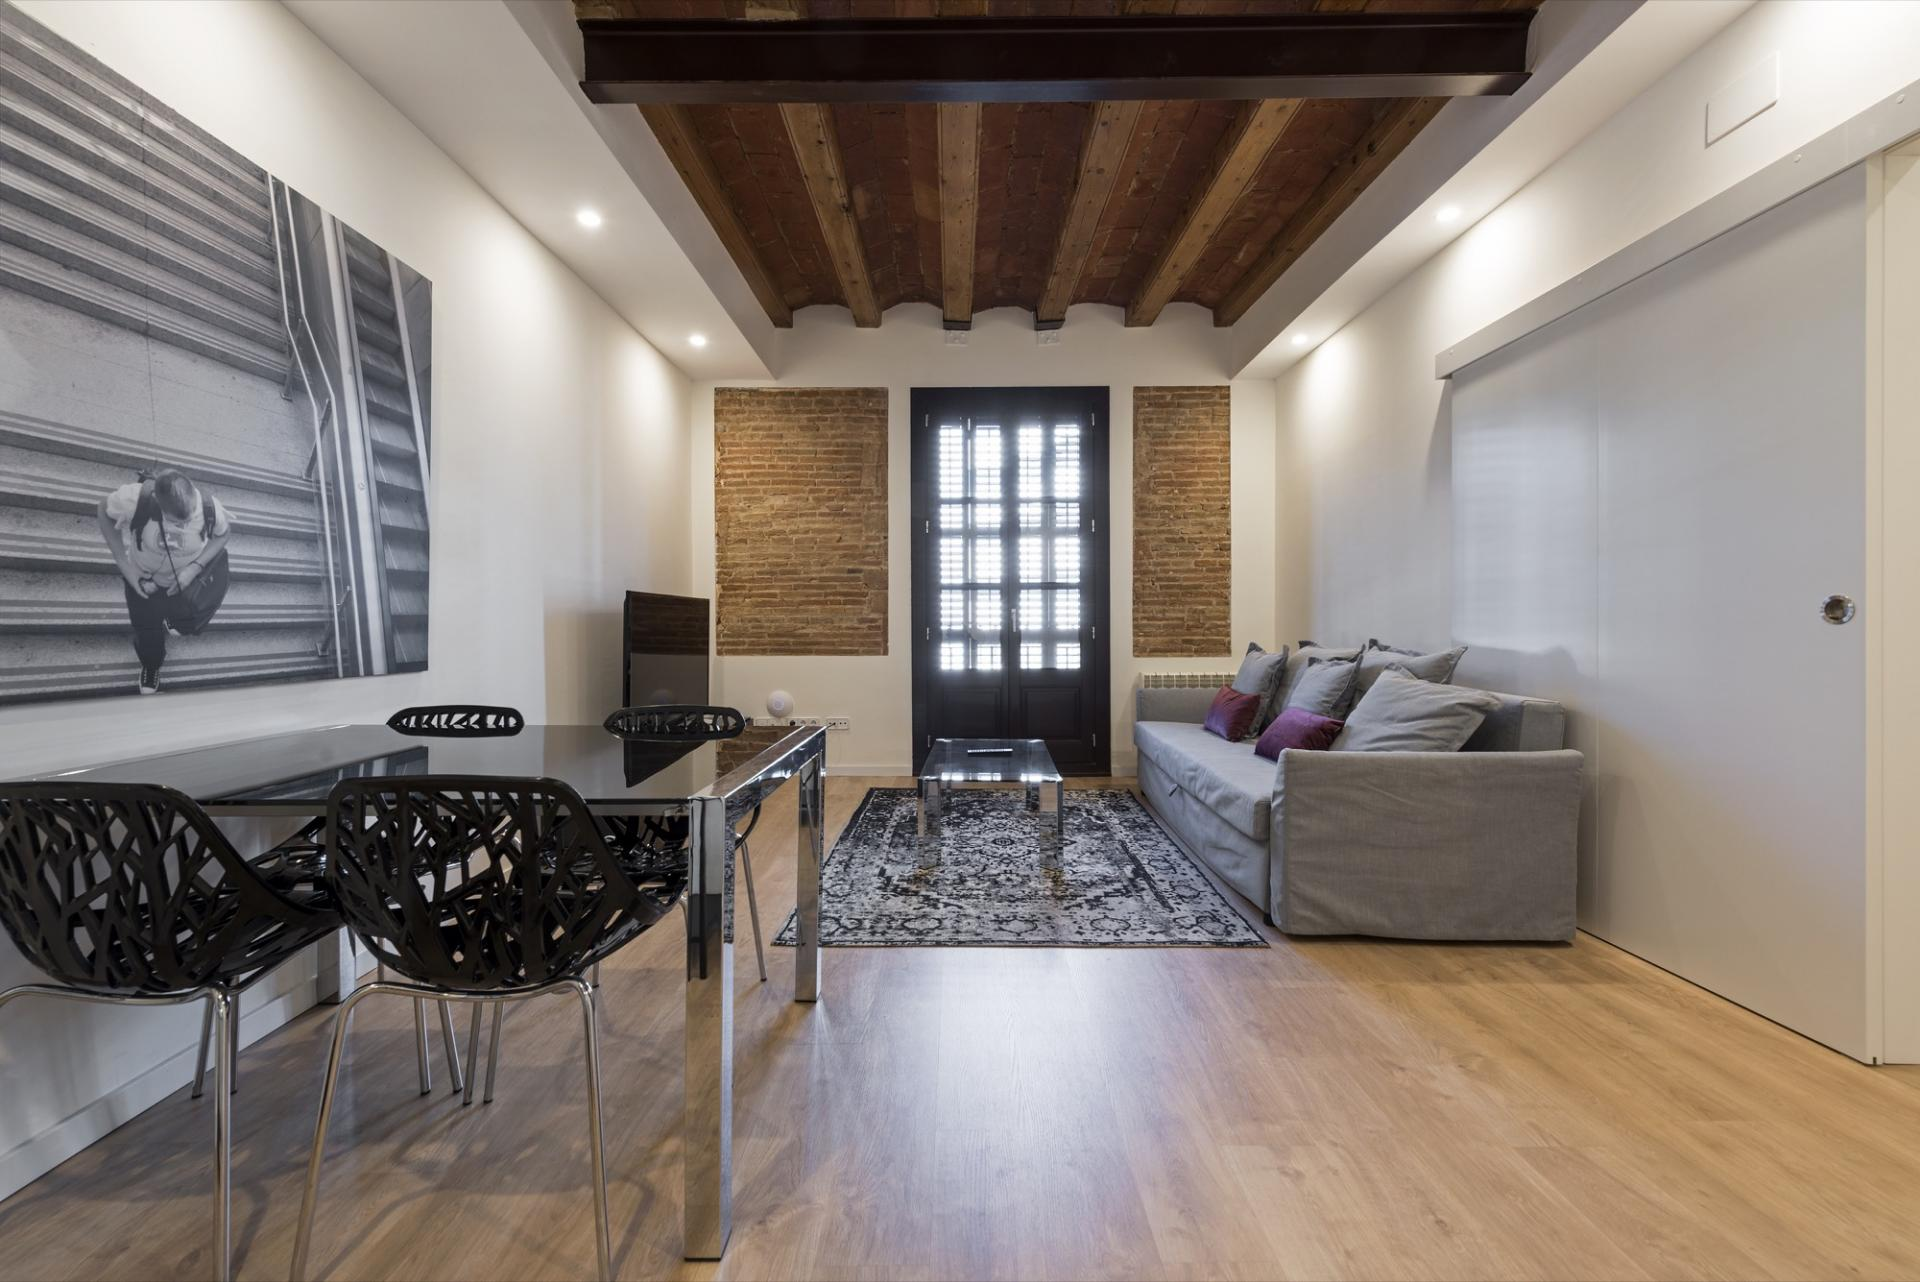 Living room at Pelayo Suites, El Raval, Barcelona - Citybase Apartments